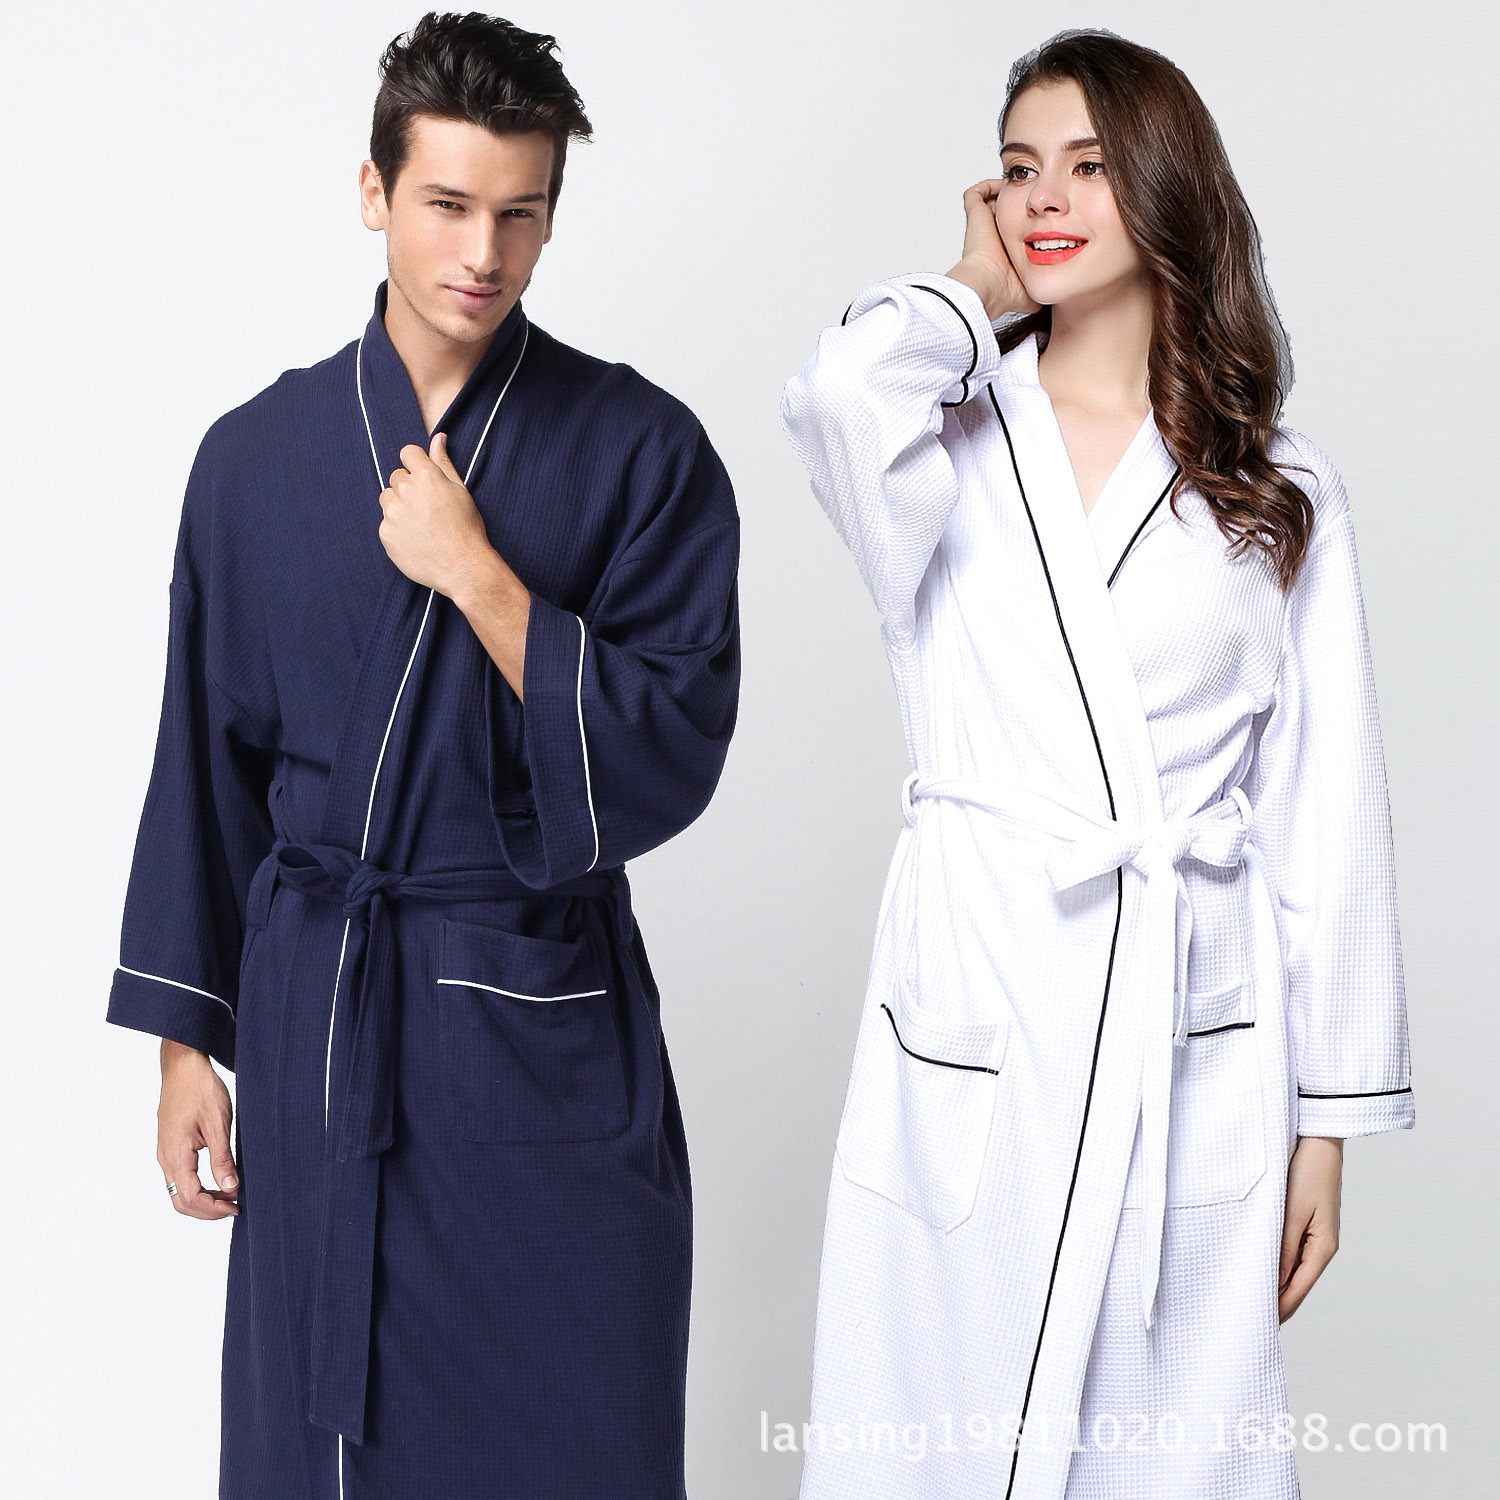 Hotel Special For Couples Waffle Bathrobe Soft Cotton Yukata Hot Spring Robe With Fertilizer  Mens Kimono Robe Robe Knit Cotton